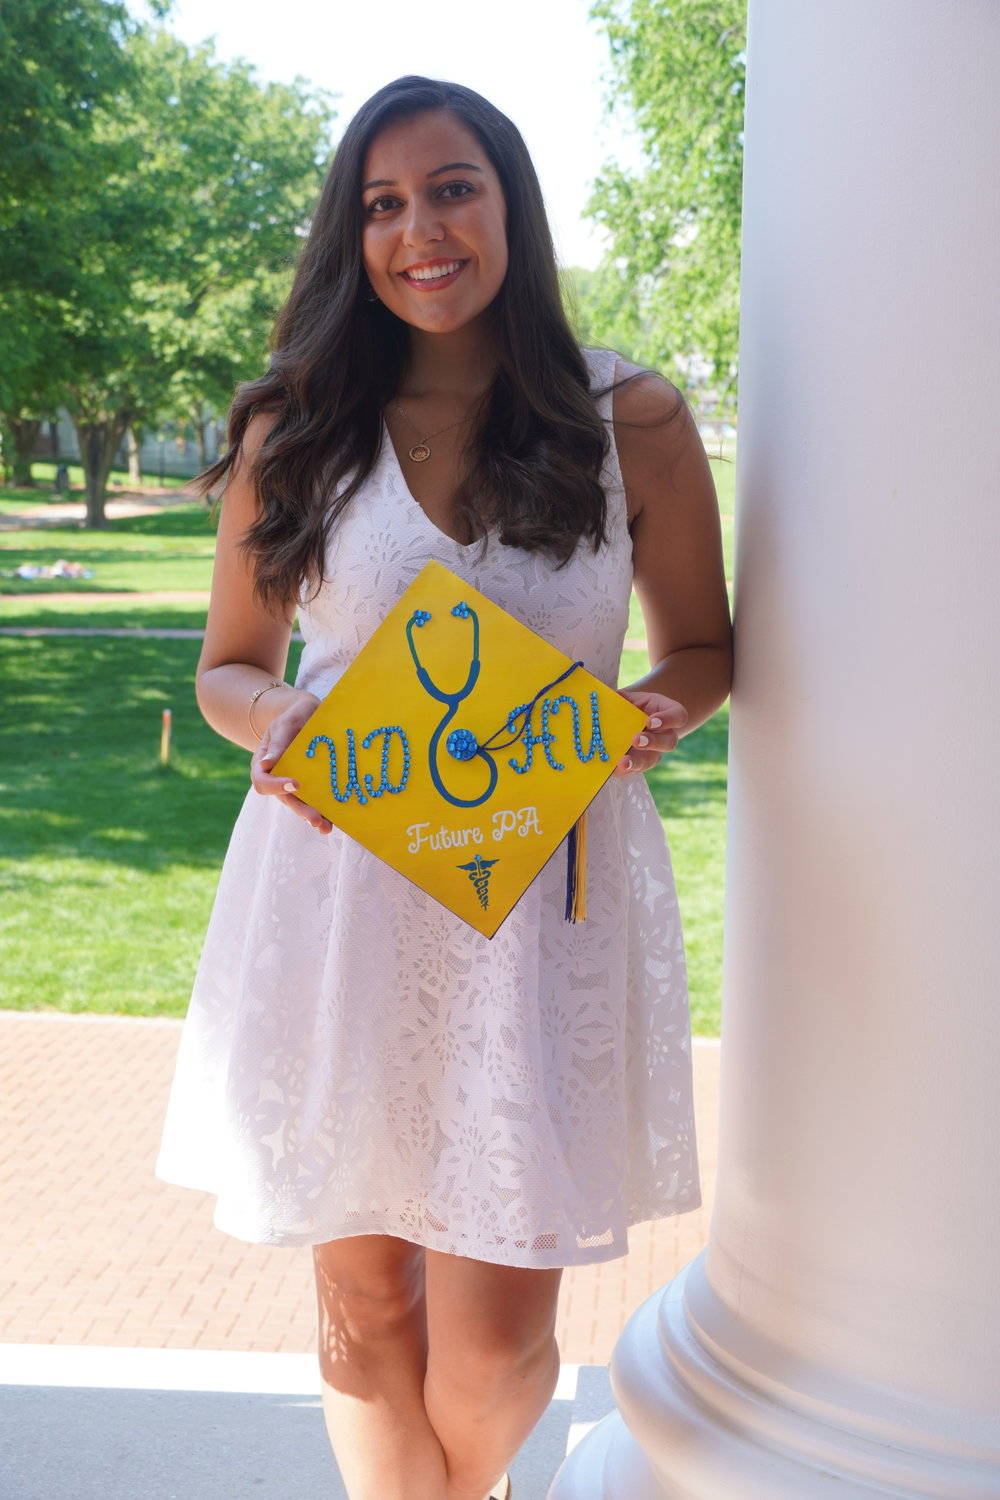 Danielle Sugar, 22, of East Norwich, will graduate from the University of Delaware with a pre-physician assistant degree.